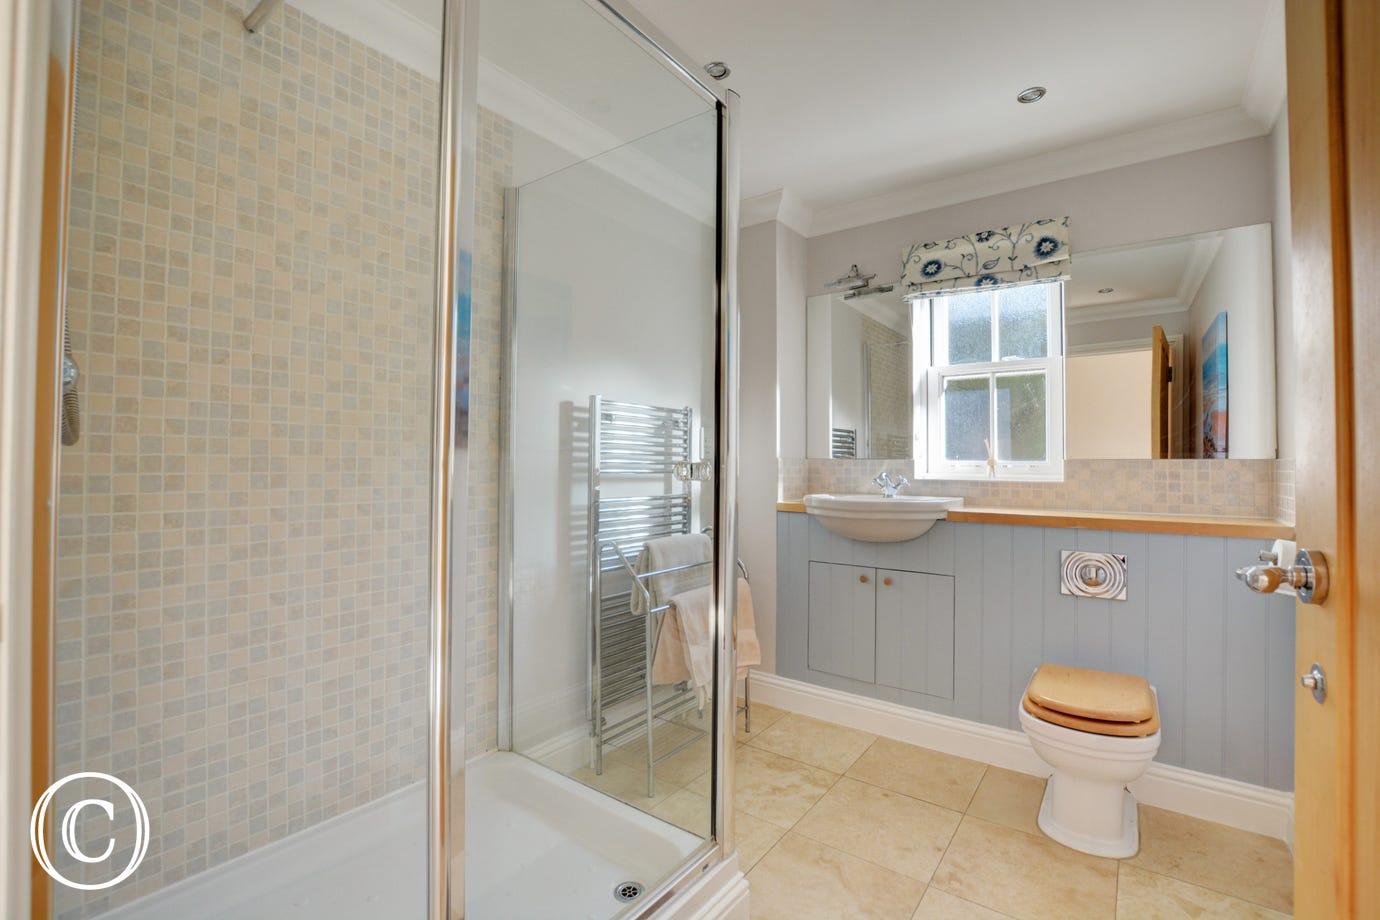 Modern en-suite shower room with cubicle